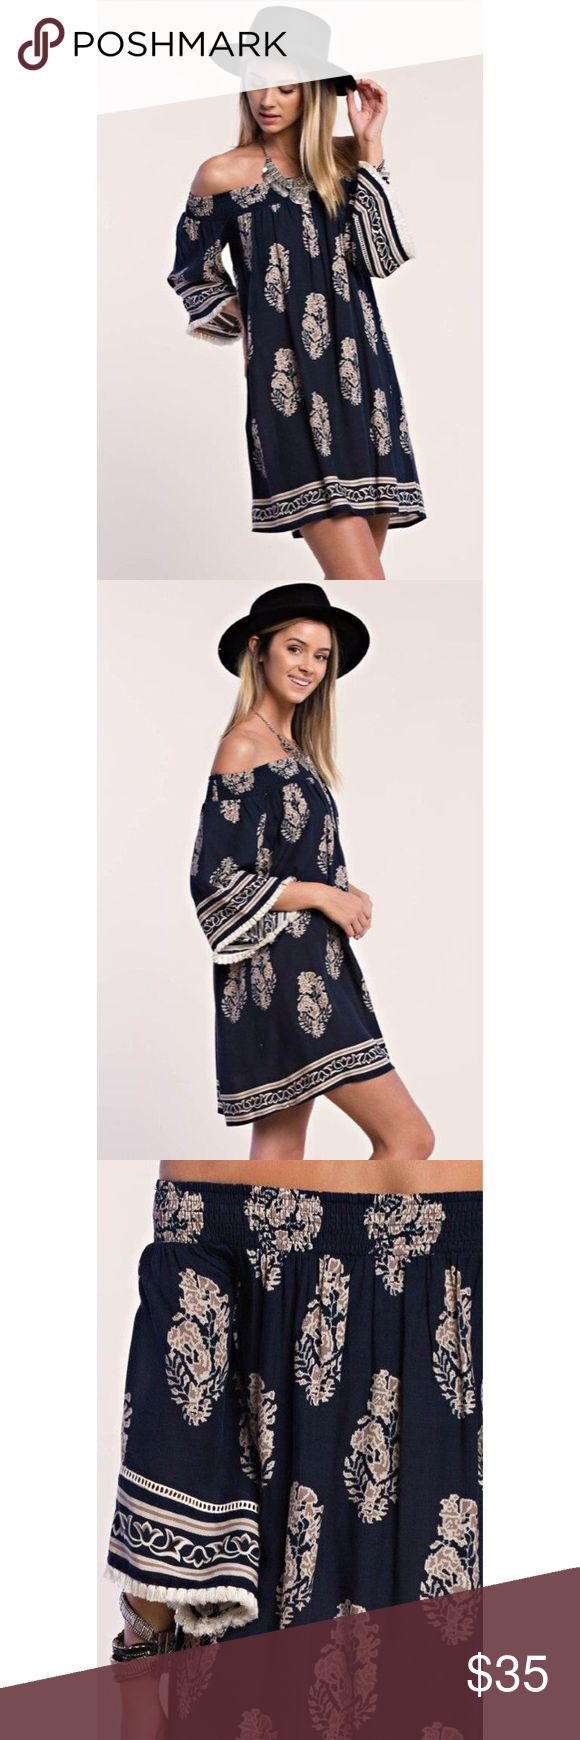 "Boho Beauty Off-Shoulder Dress 🔹Navy with floral/leaf pattern 🔹Off shoulder loose fitting silhouette 🔹Bell sleeves with cream colored tassels 🔹100% Rayon 🔹Length is approx 29"" (measured flat) 🔹Flattering for many body types 🔹Perfect for festival season!  💵Price firm unless bundled 👍🏻Top rated seller 👍🏻Fast shipping 🚫No trades Dresses"